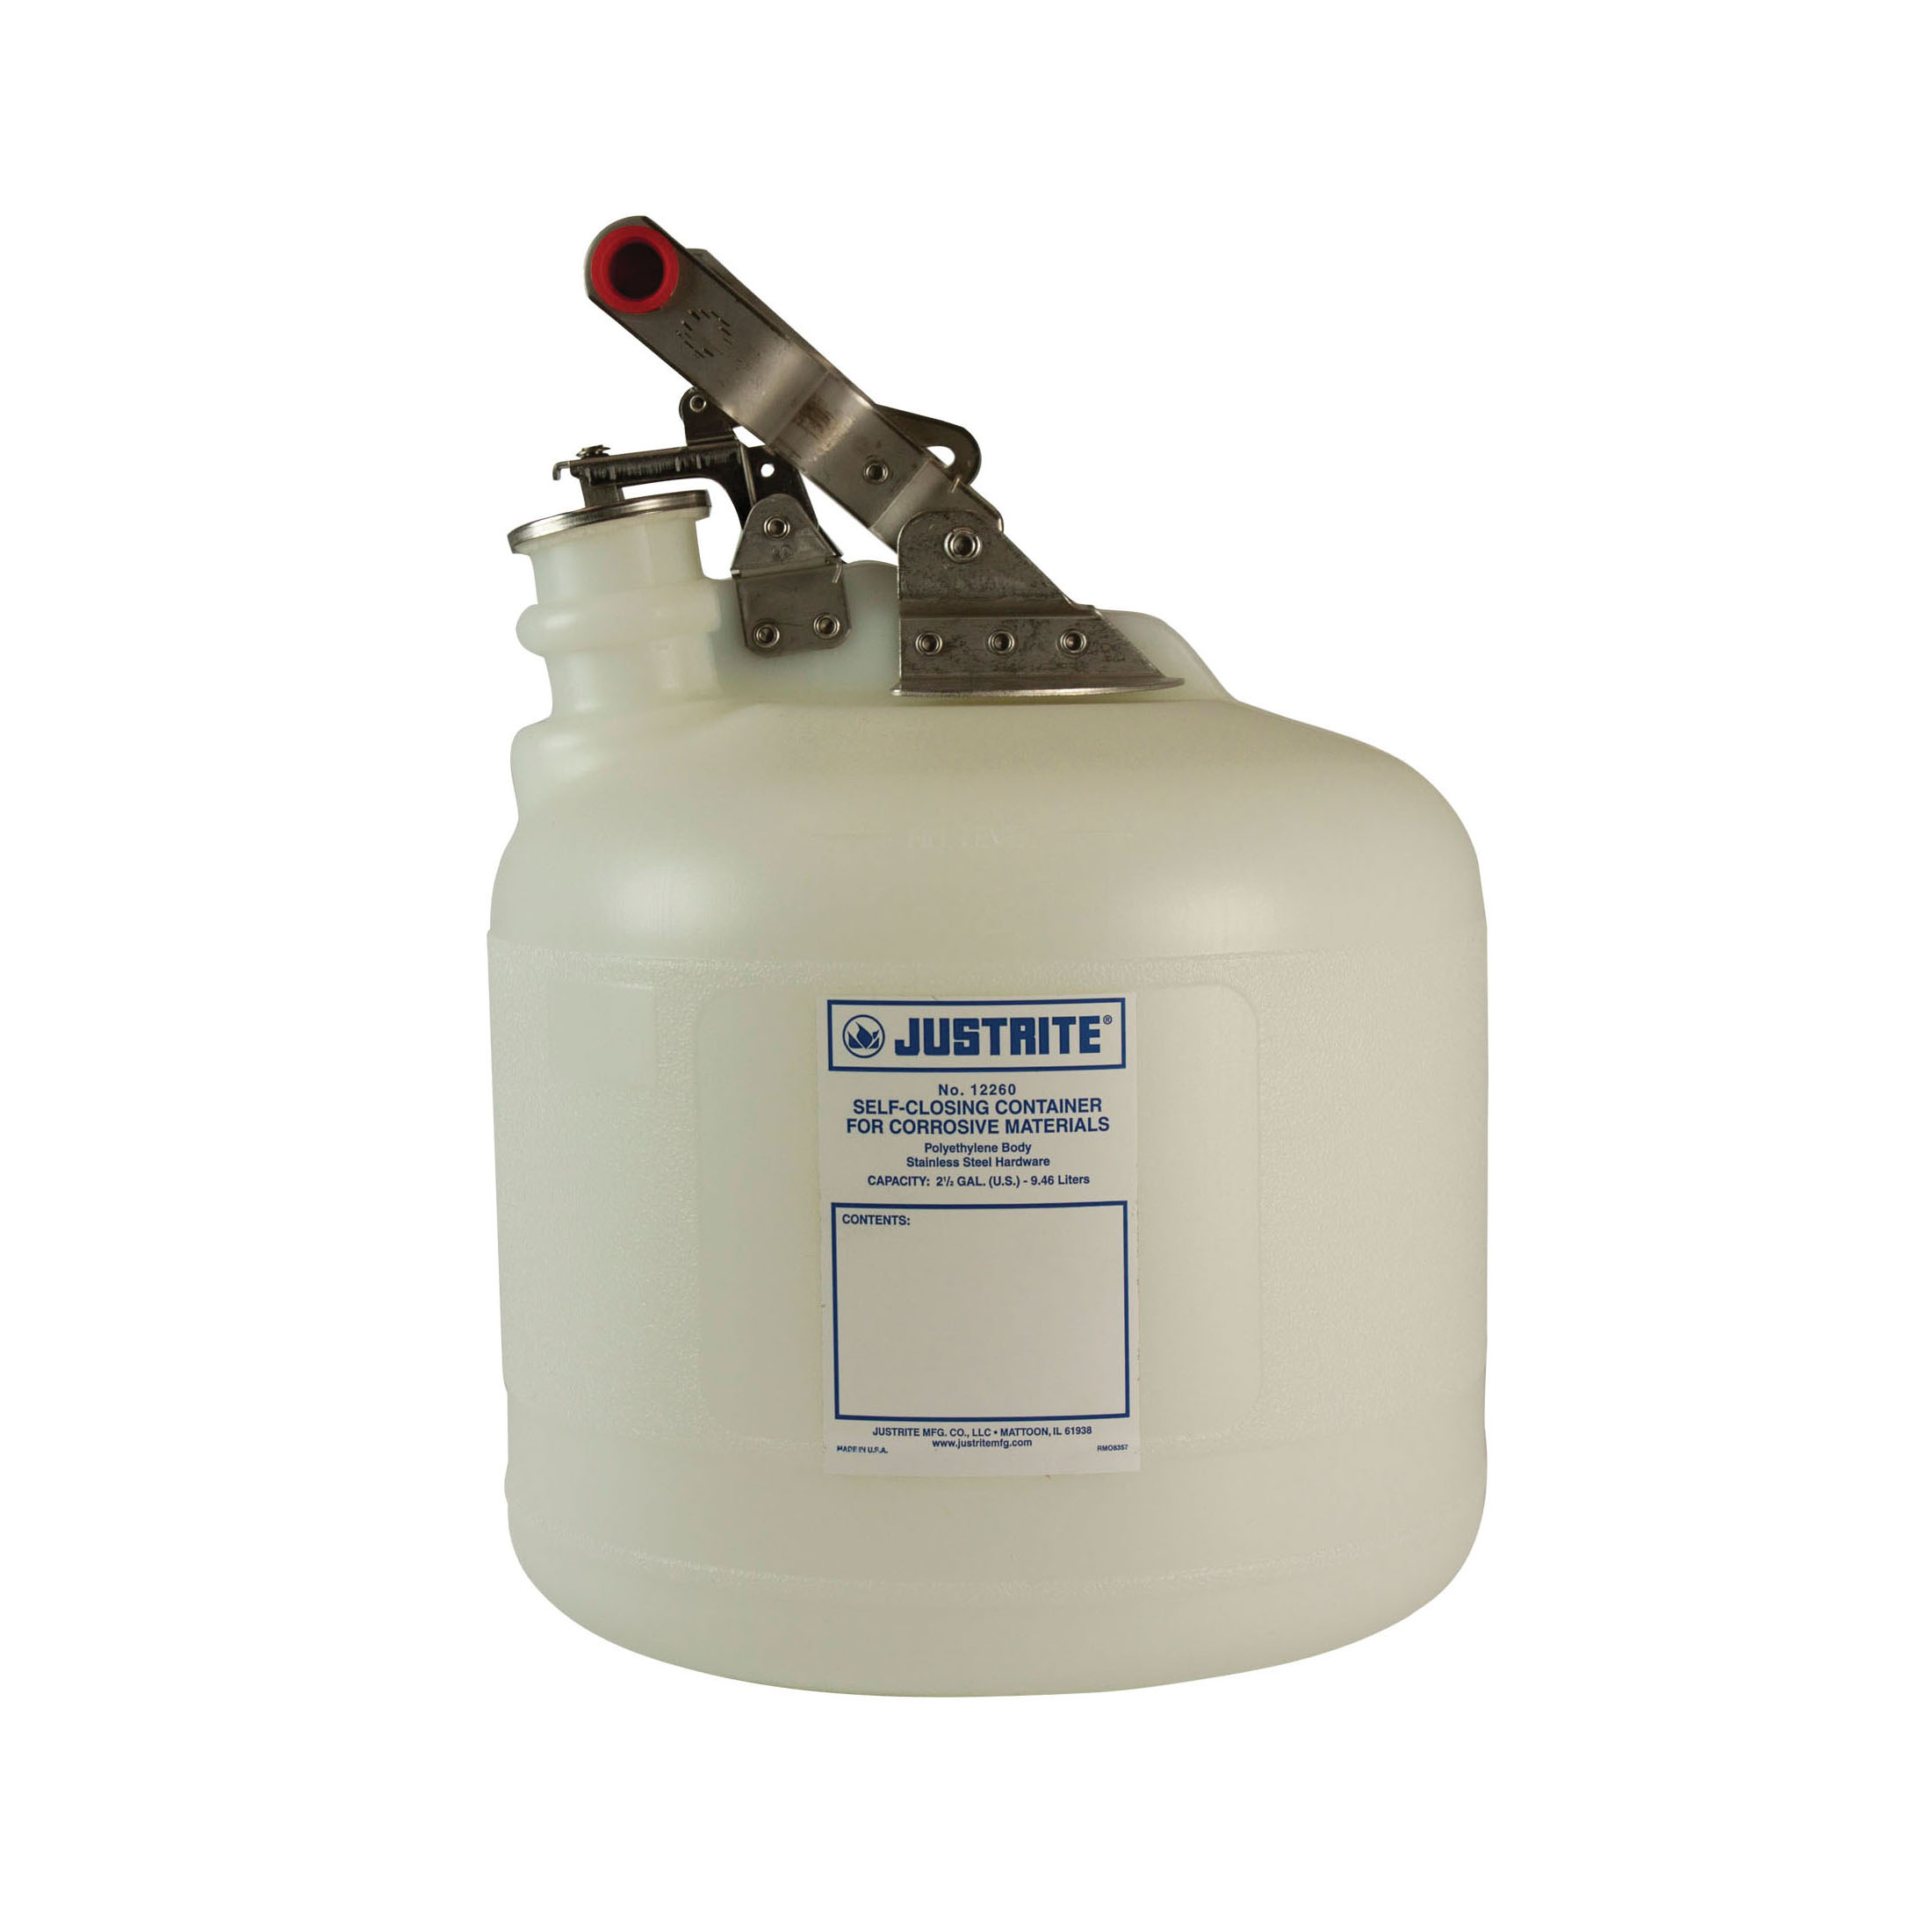 Justrite® 12260 Self-Closing Safety Container With Stainless Steel Hardware, 2.5 gal Capacity, 10-3/4 in Dia, 15-1/4 in H, Polyethylene, White